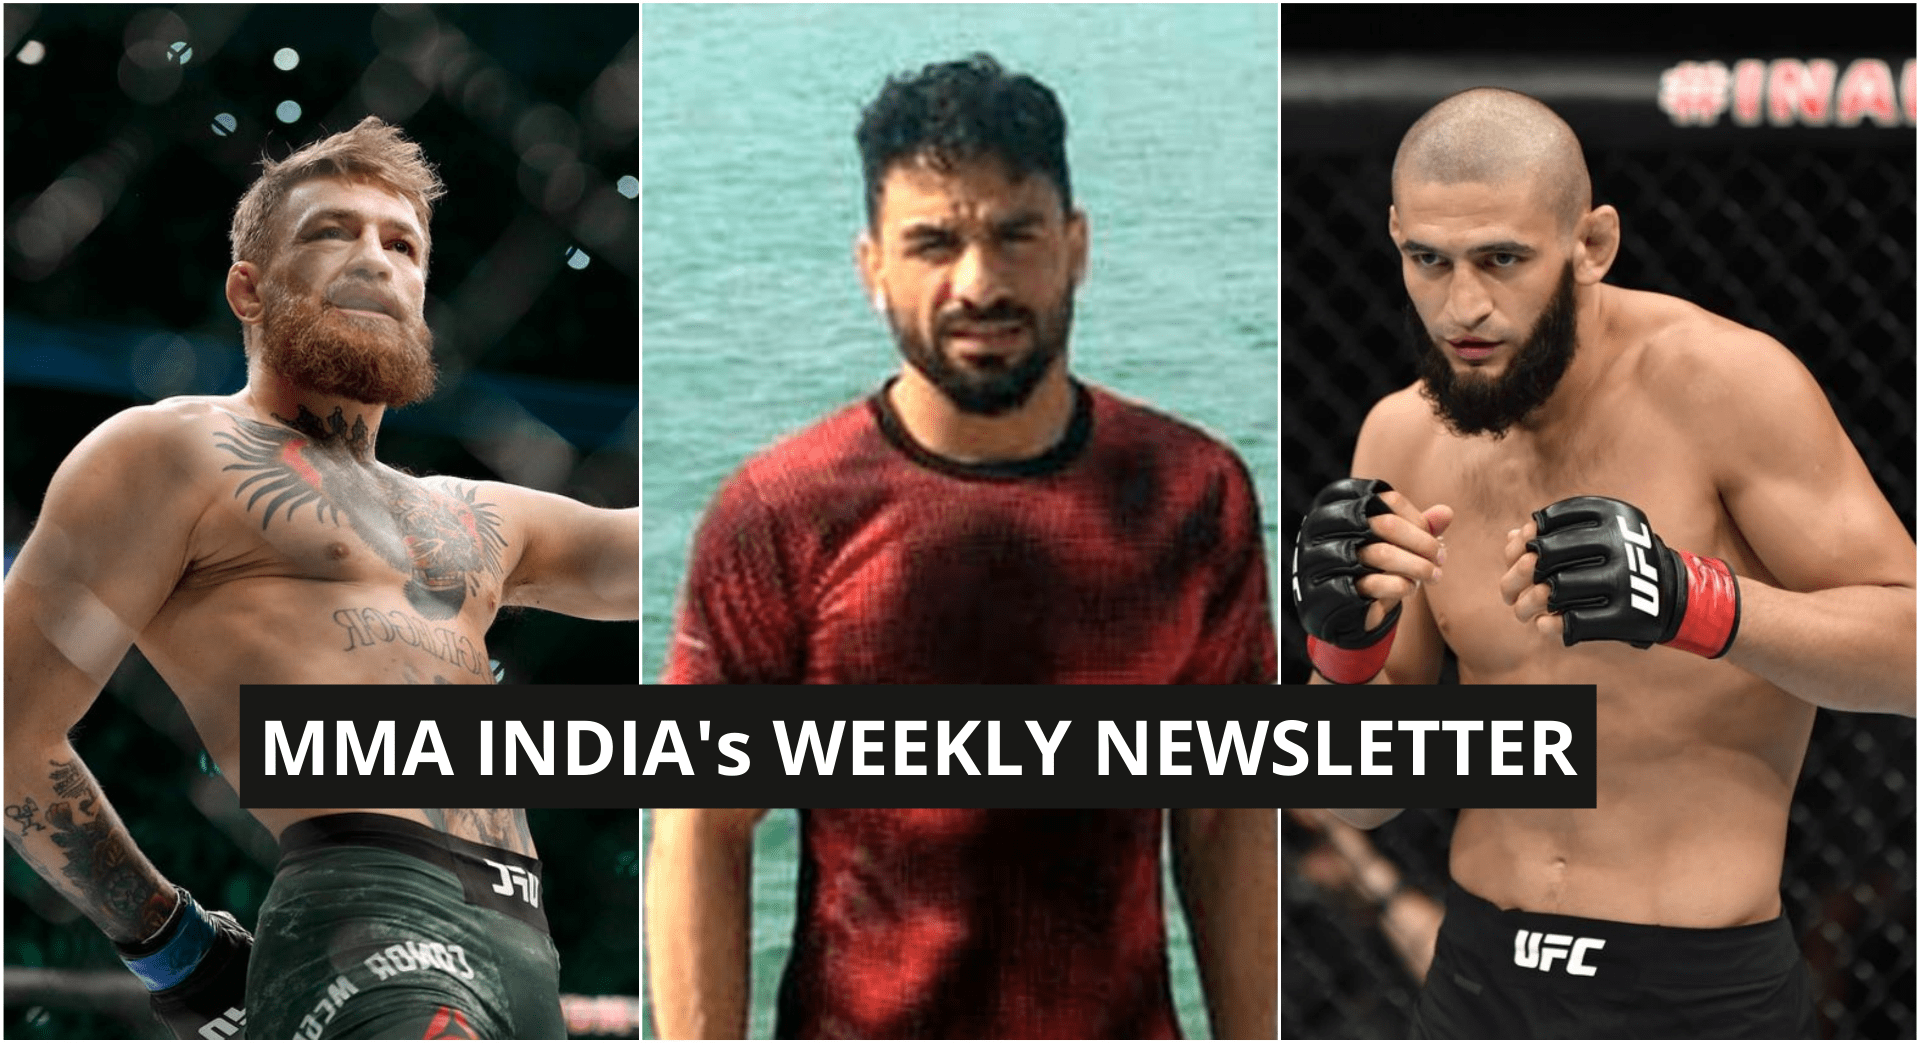 MMA India's Weekly Roundup (8-14 September): Iran executed Navid Afkari, McGregor arrested for alleged sexual assault and more - Navid